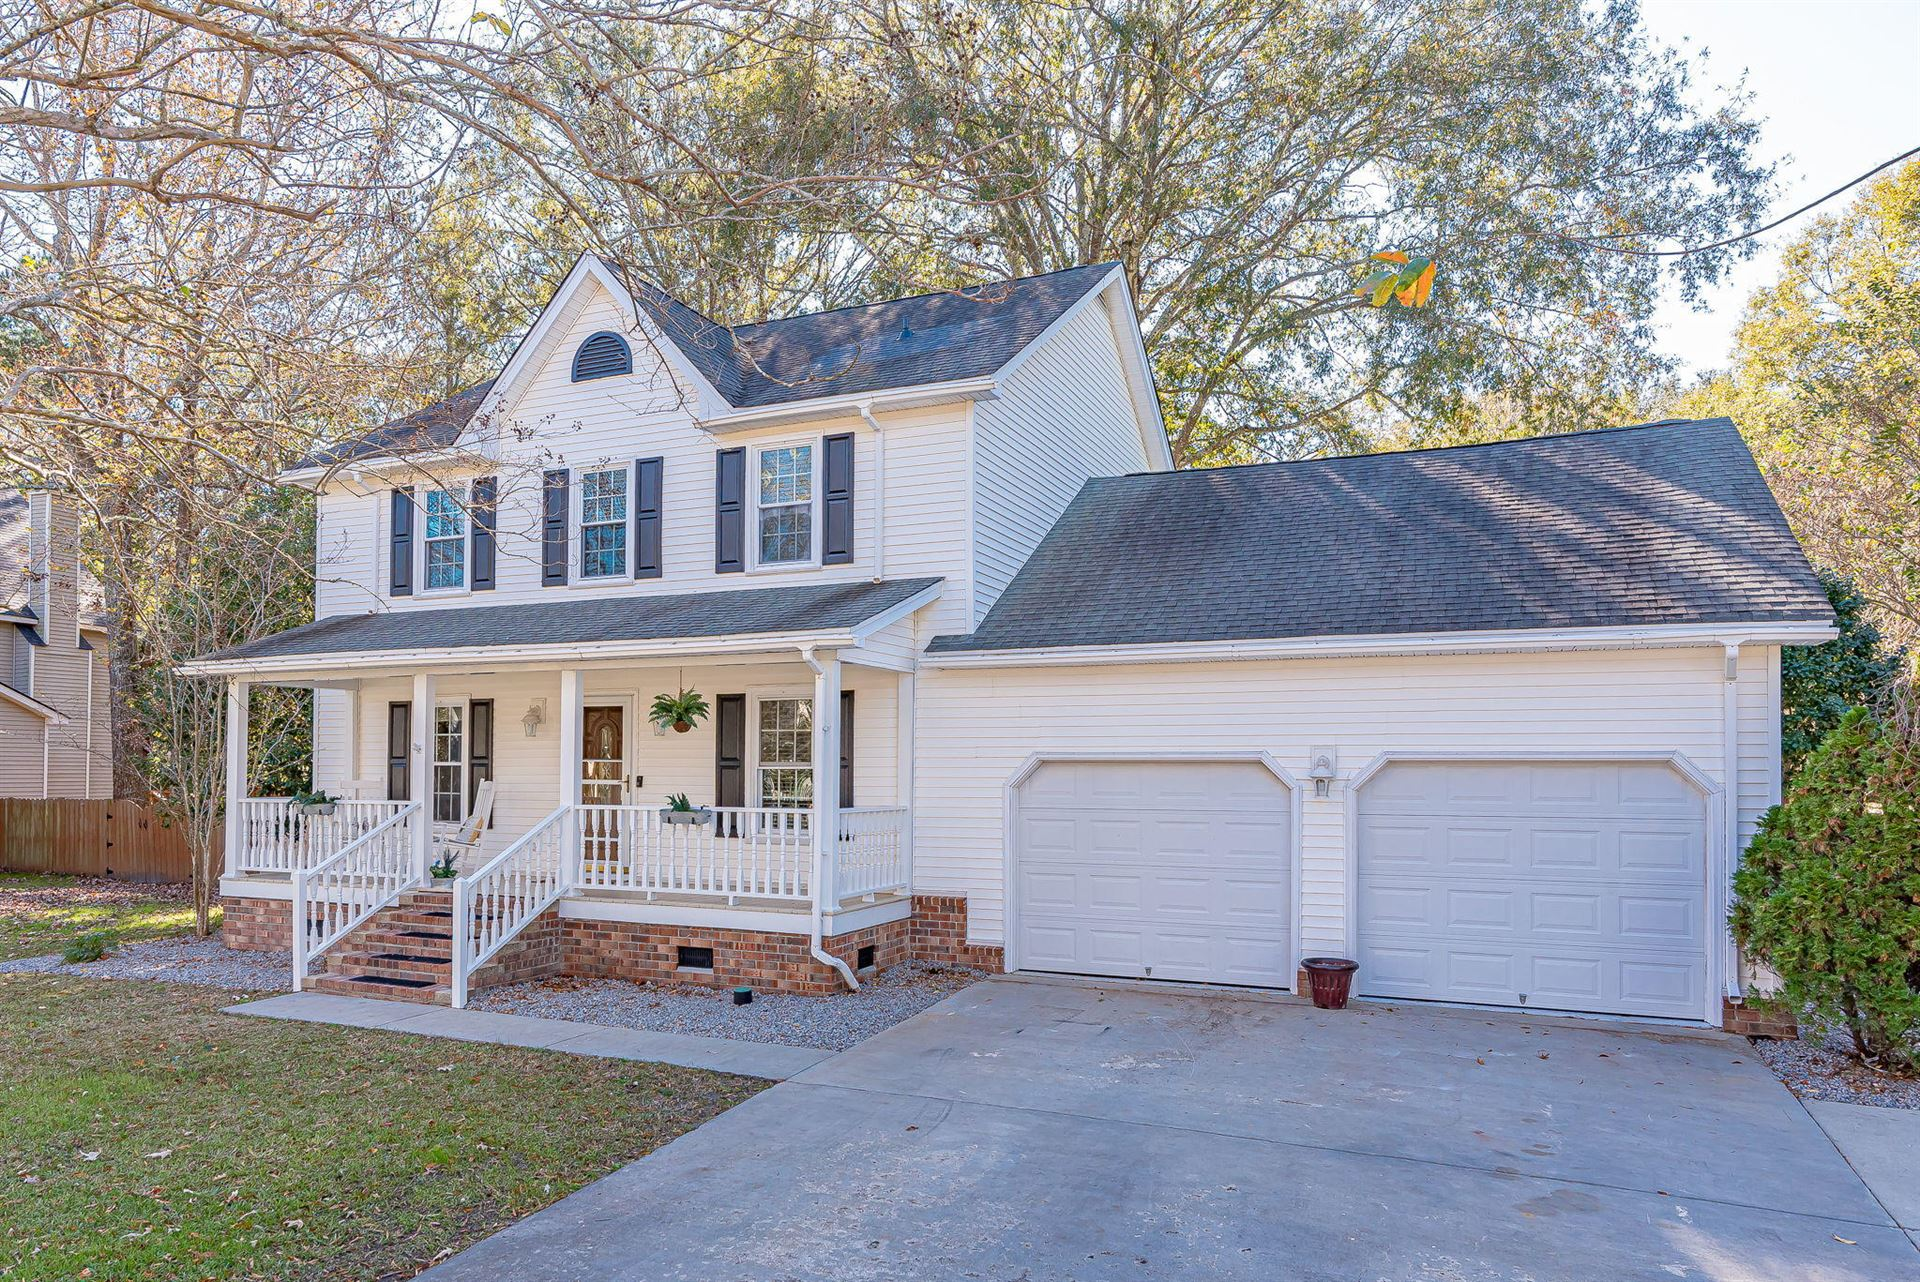 Photo of 8295 Governors Walk, Charleston, SC 29418 (MLS # 20032169)